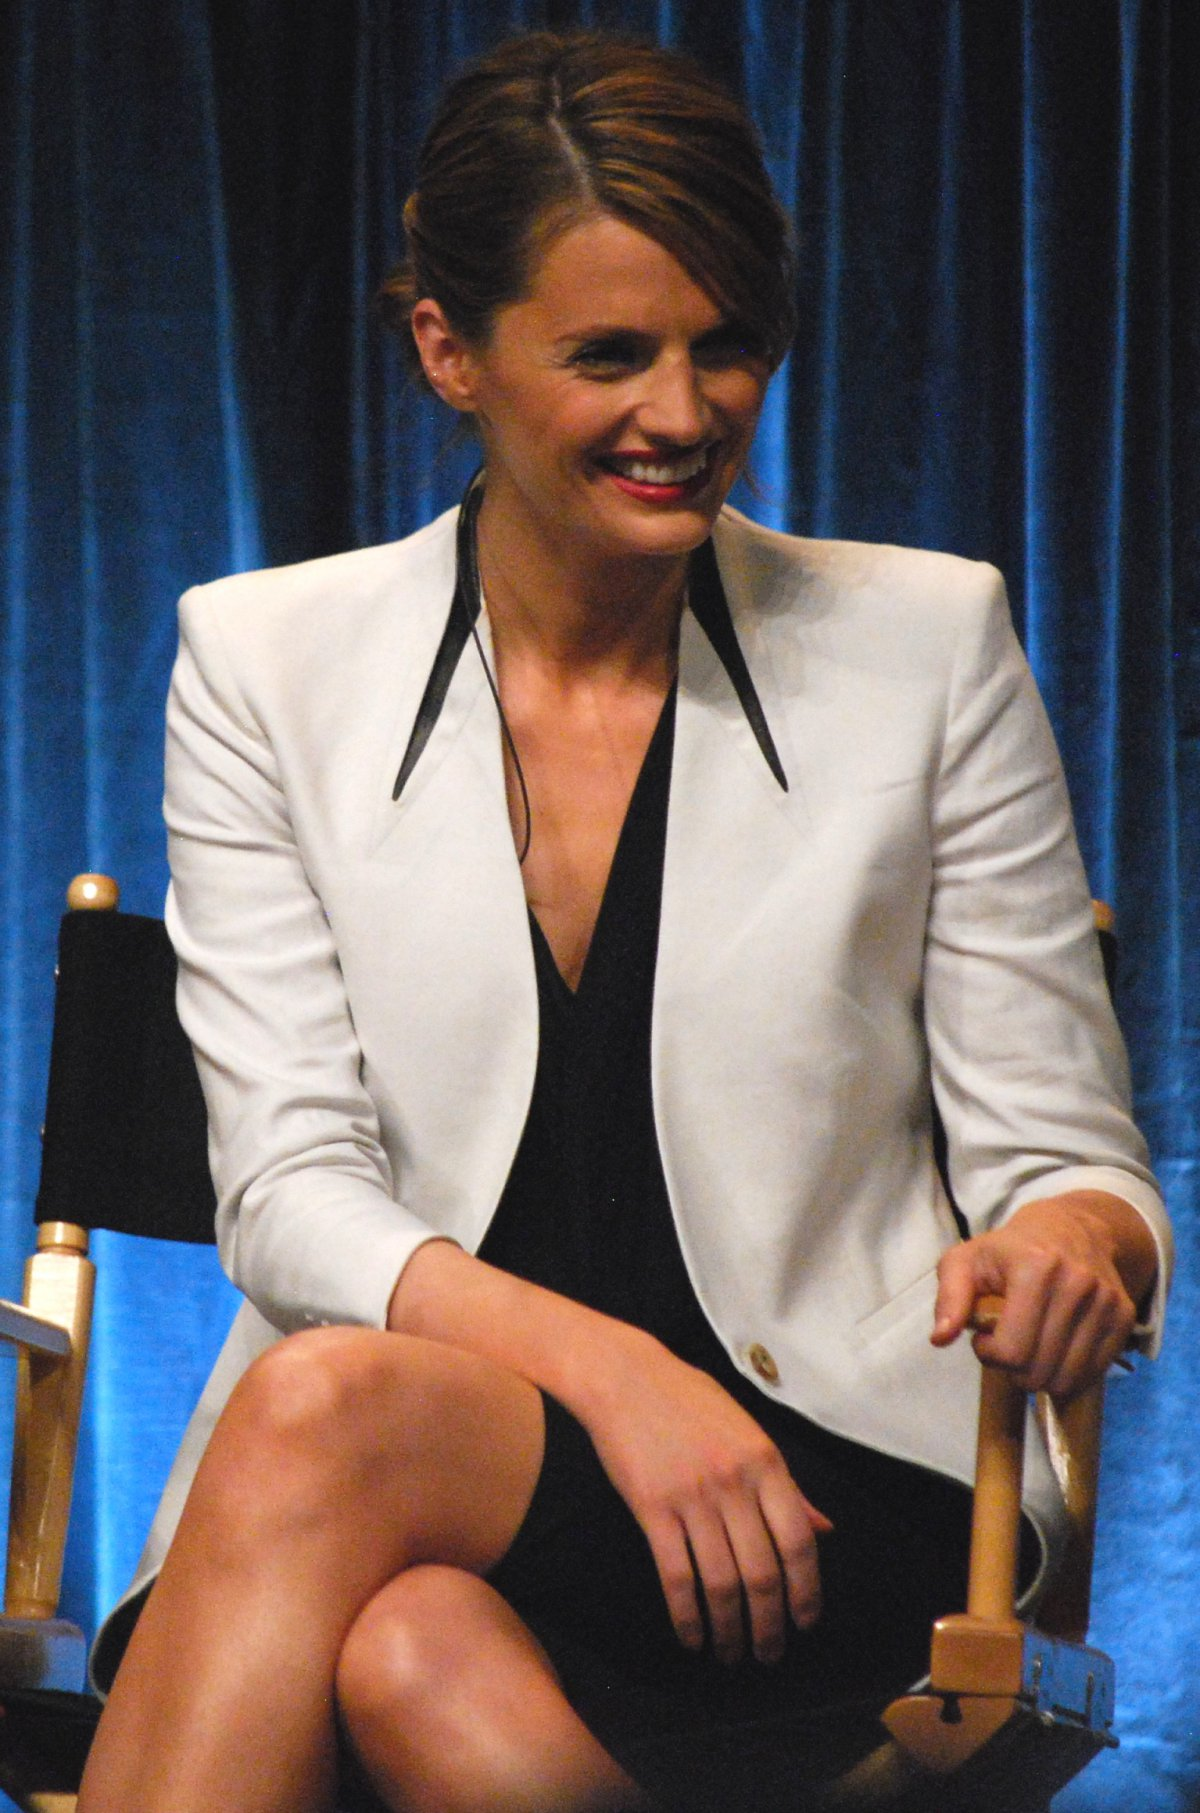 Stana katic married is What Really